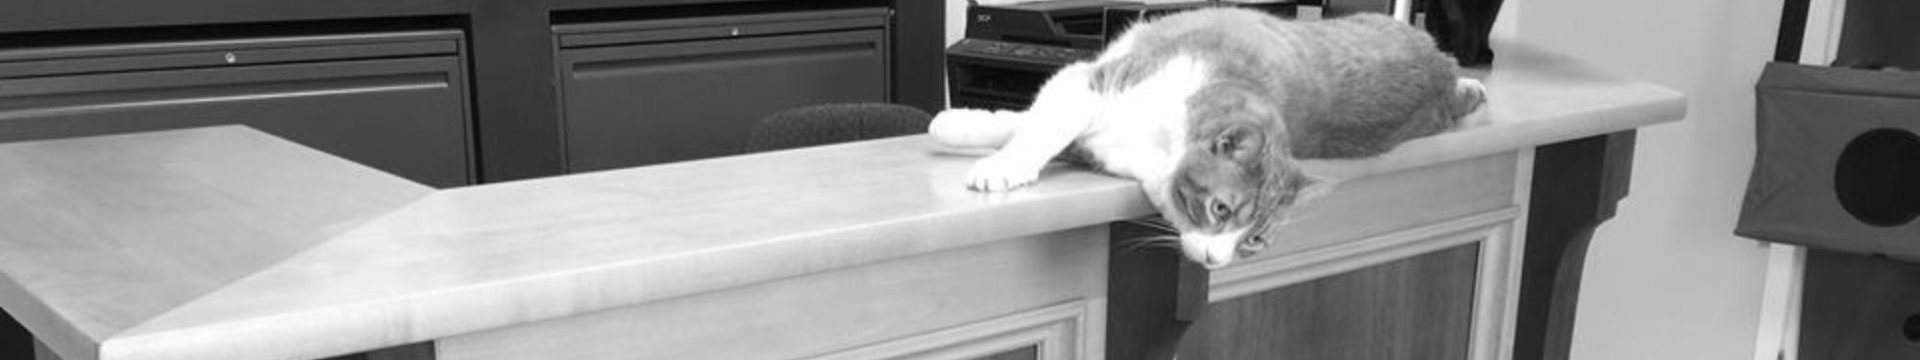 Front desk with cats